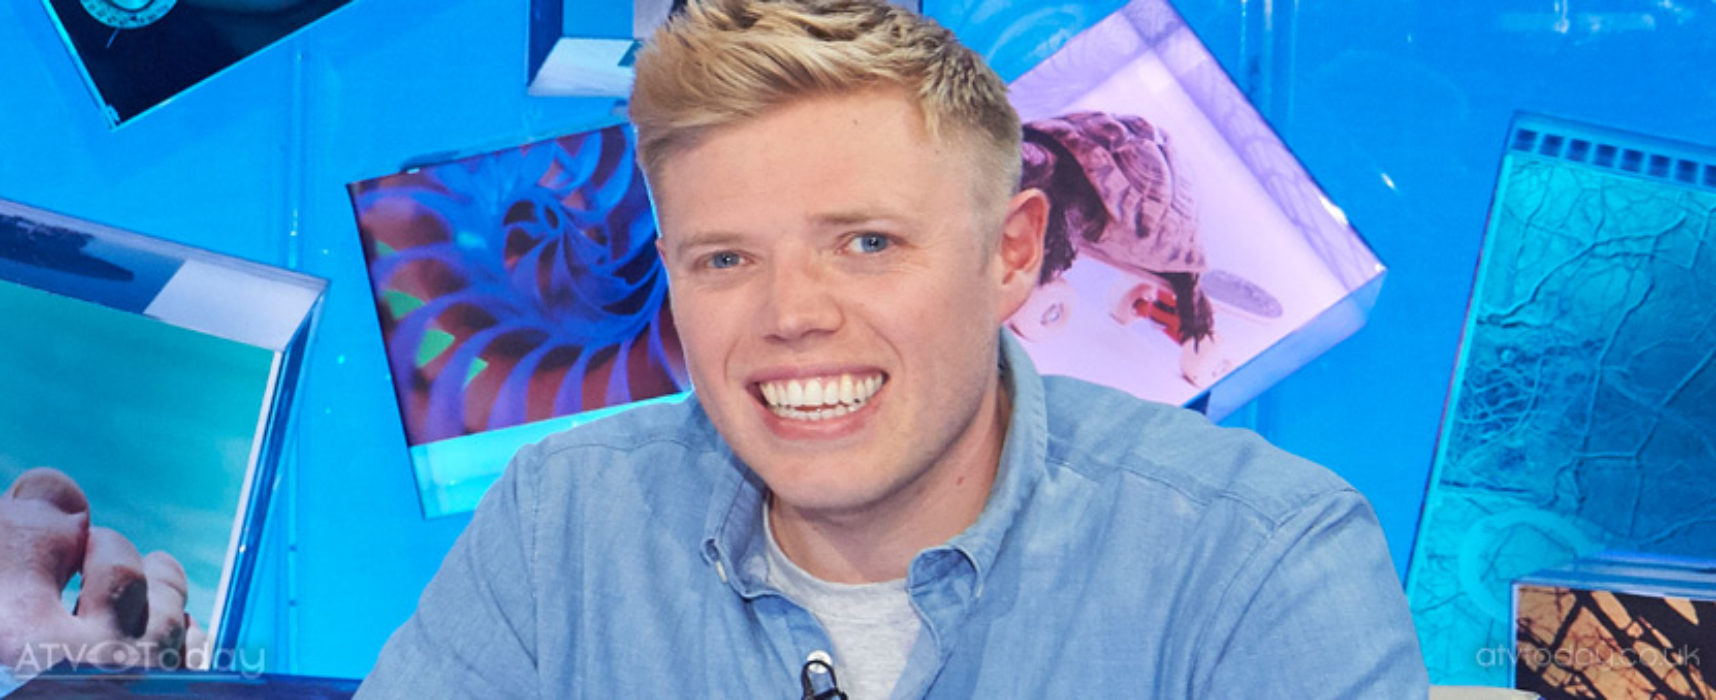 Rob Beckett to host prime time BBC entertainment series